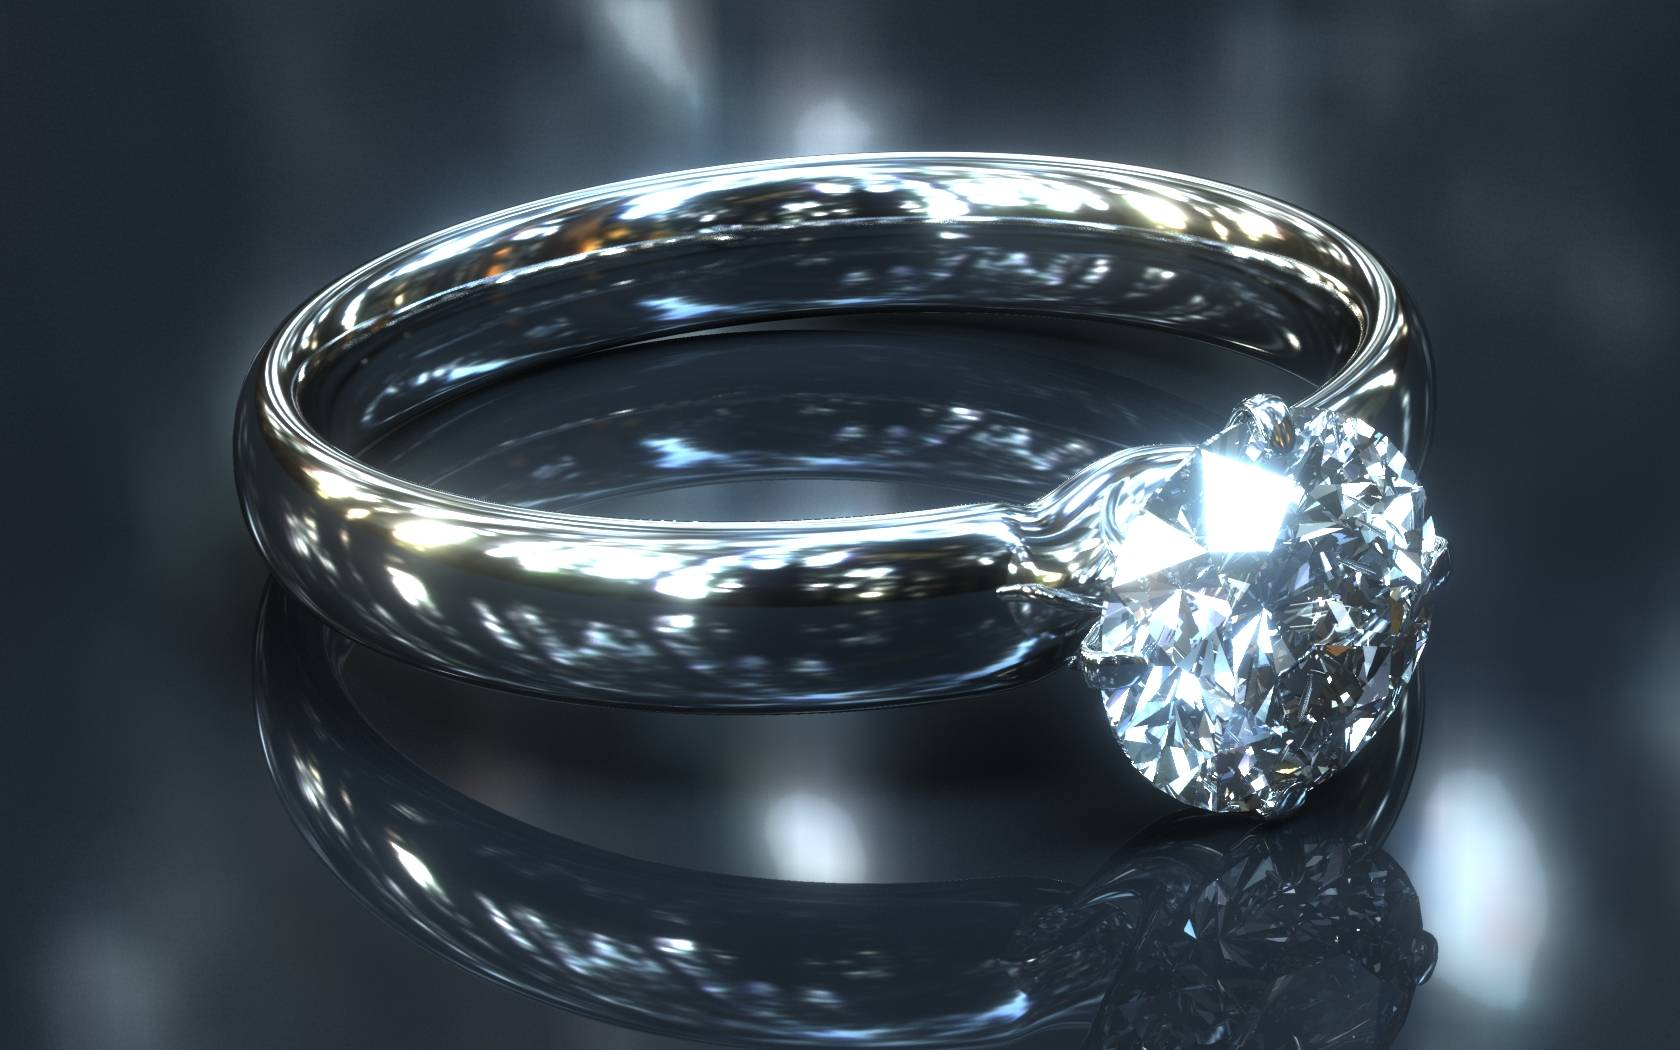 Free Download Diamond Ring Diamonds Wallpaper 1680x1050 For Your